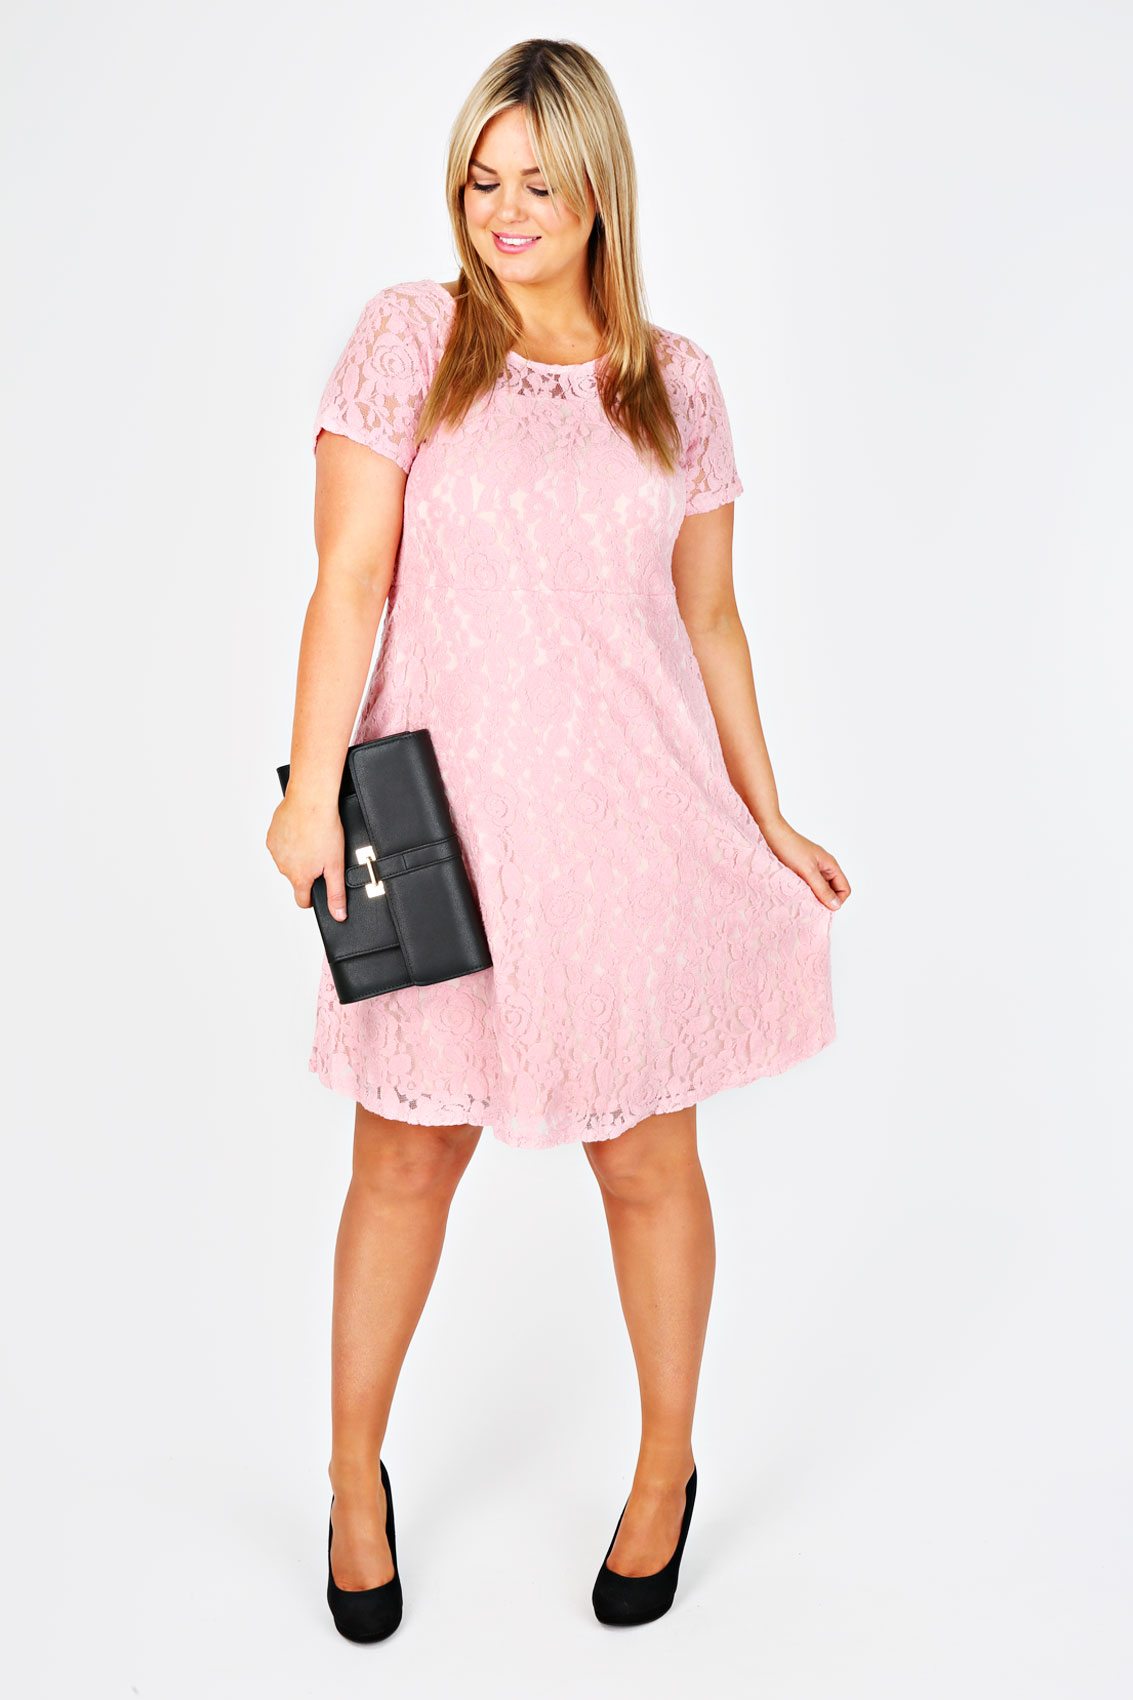 Plus Size Pastel Dresses